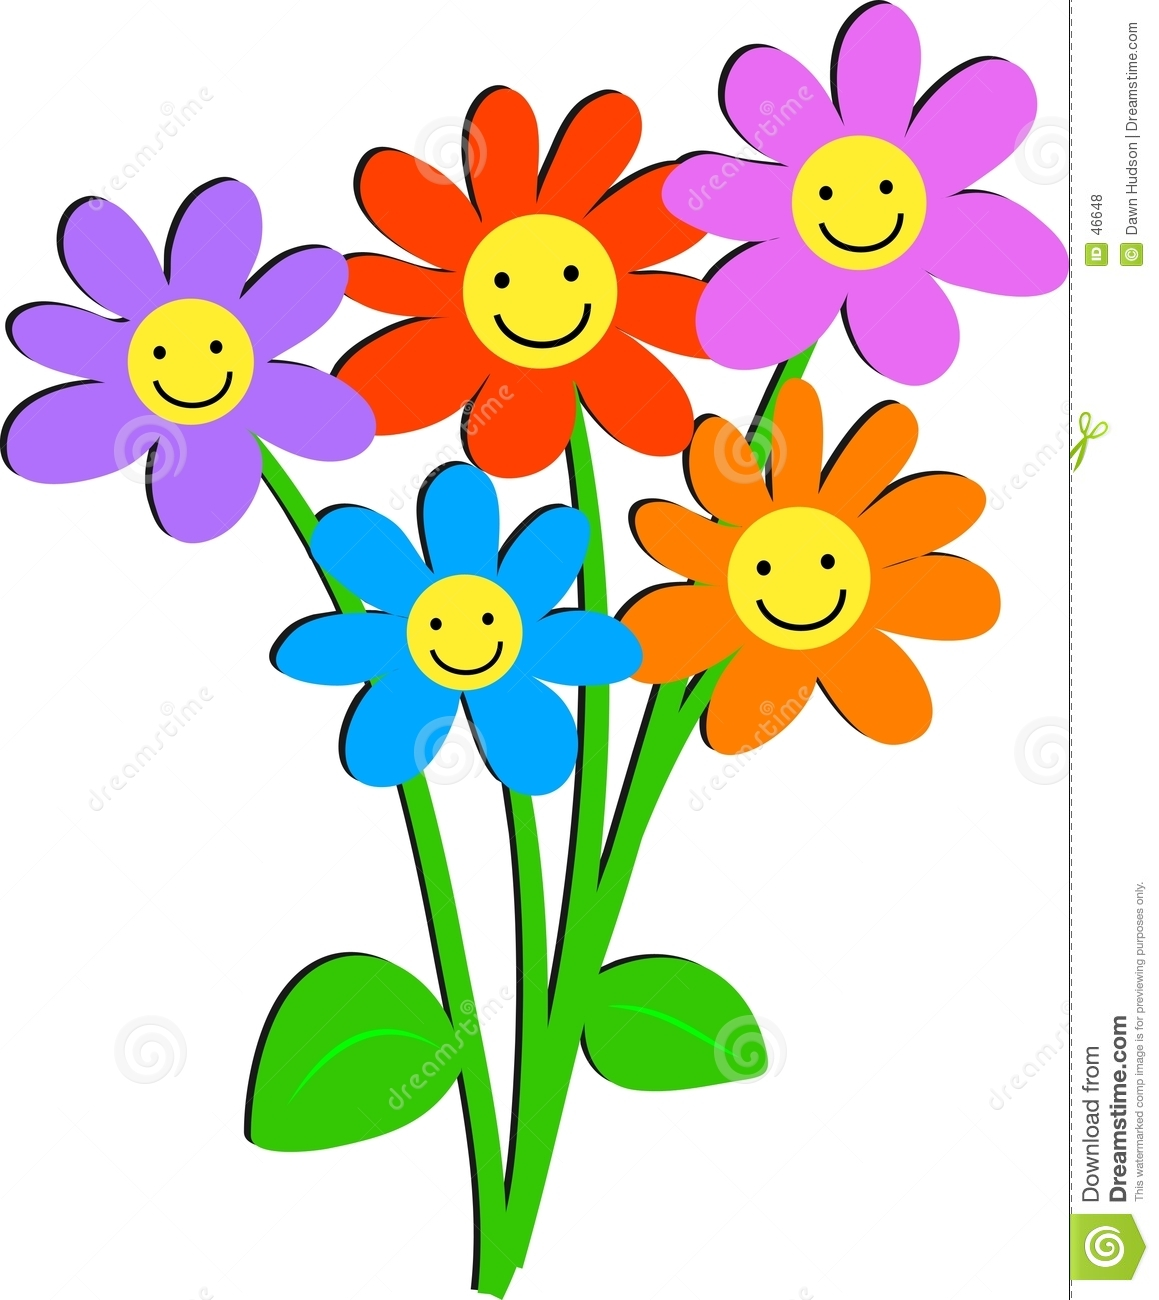 free clipart birthday flowers ; smiley-face-flower-clipart-happy-flowers-46648